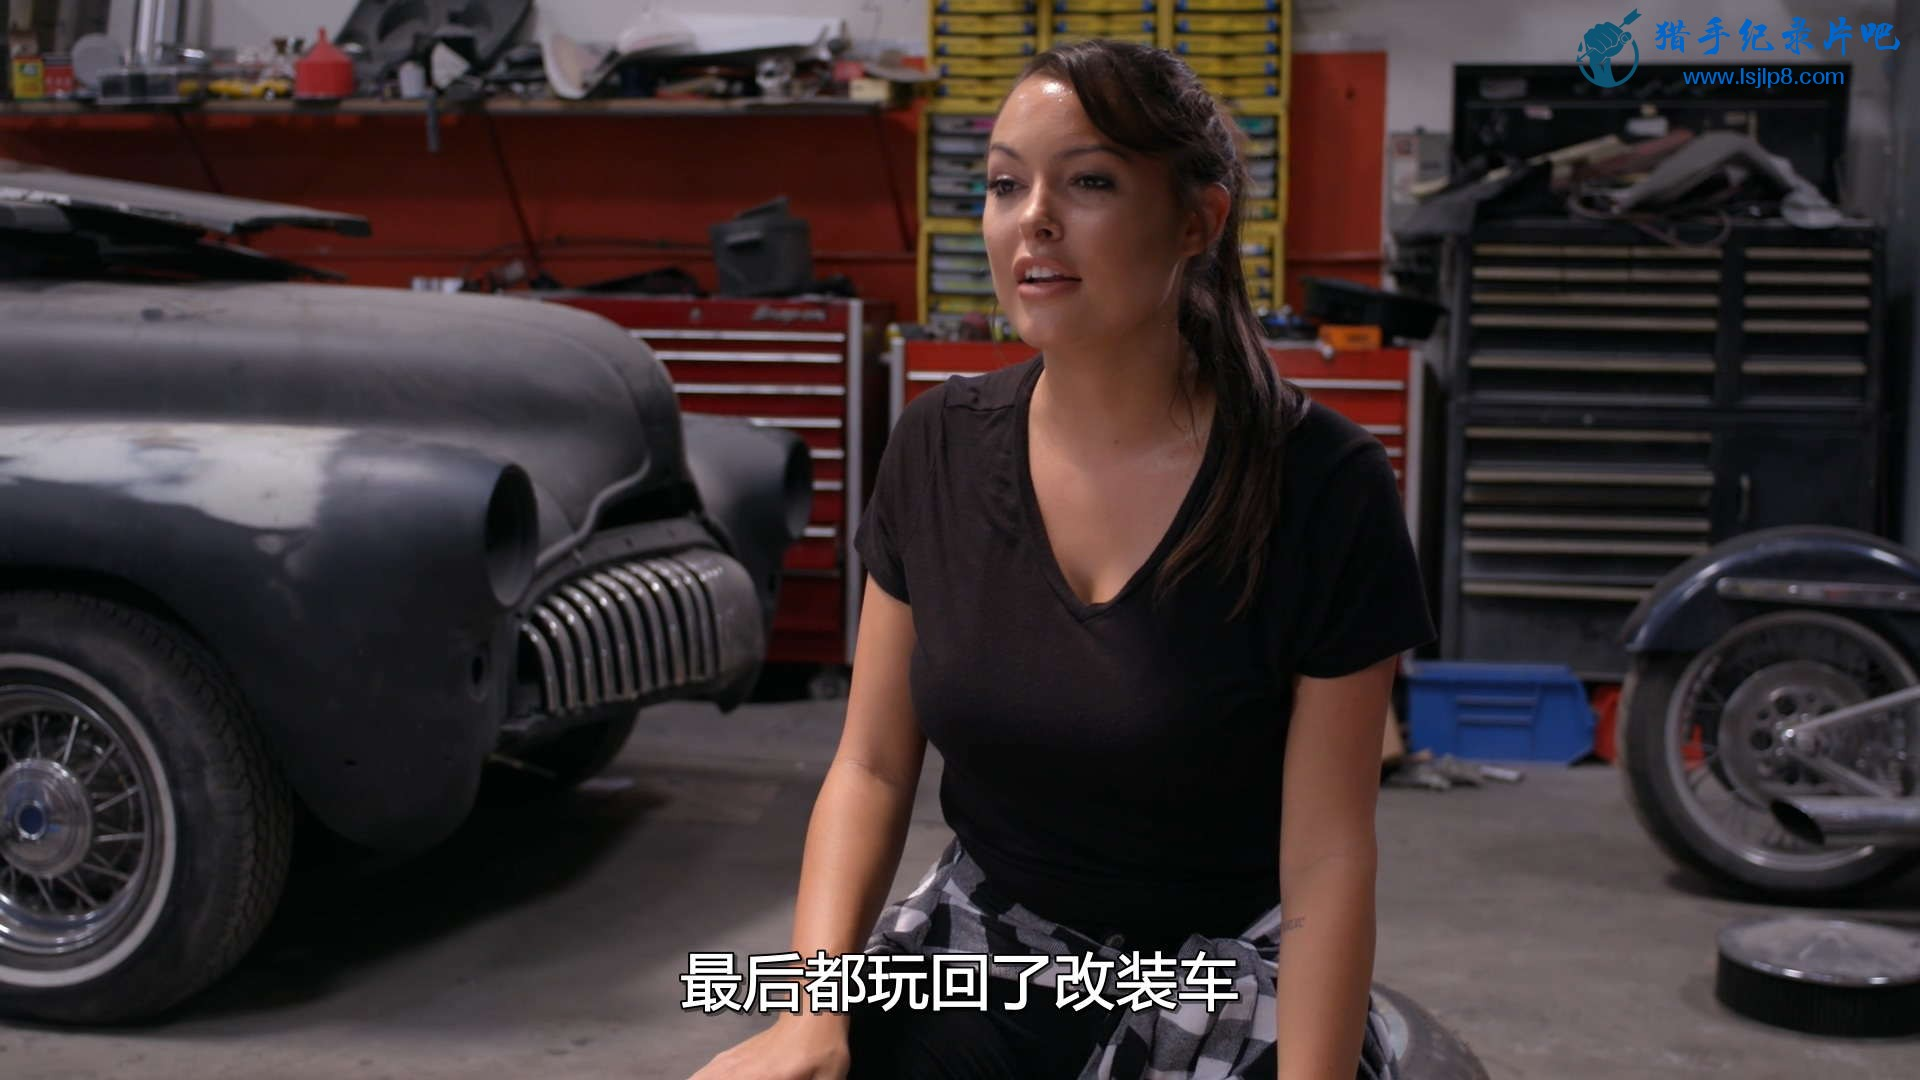 Car.Masters.Rust.to.Riches.S01E01.Outsmarted.1080p.NF.WEB-DL.DD 5.1.x264-AJP69.m.jpg